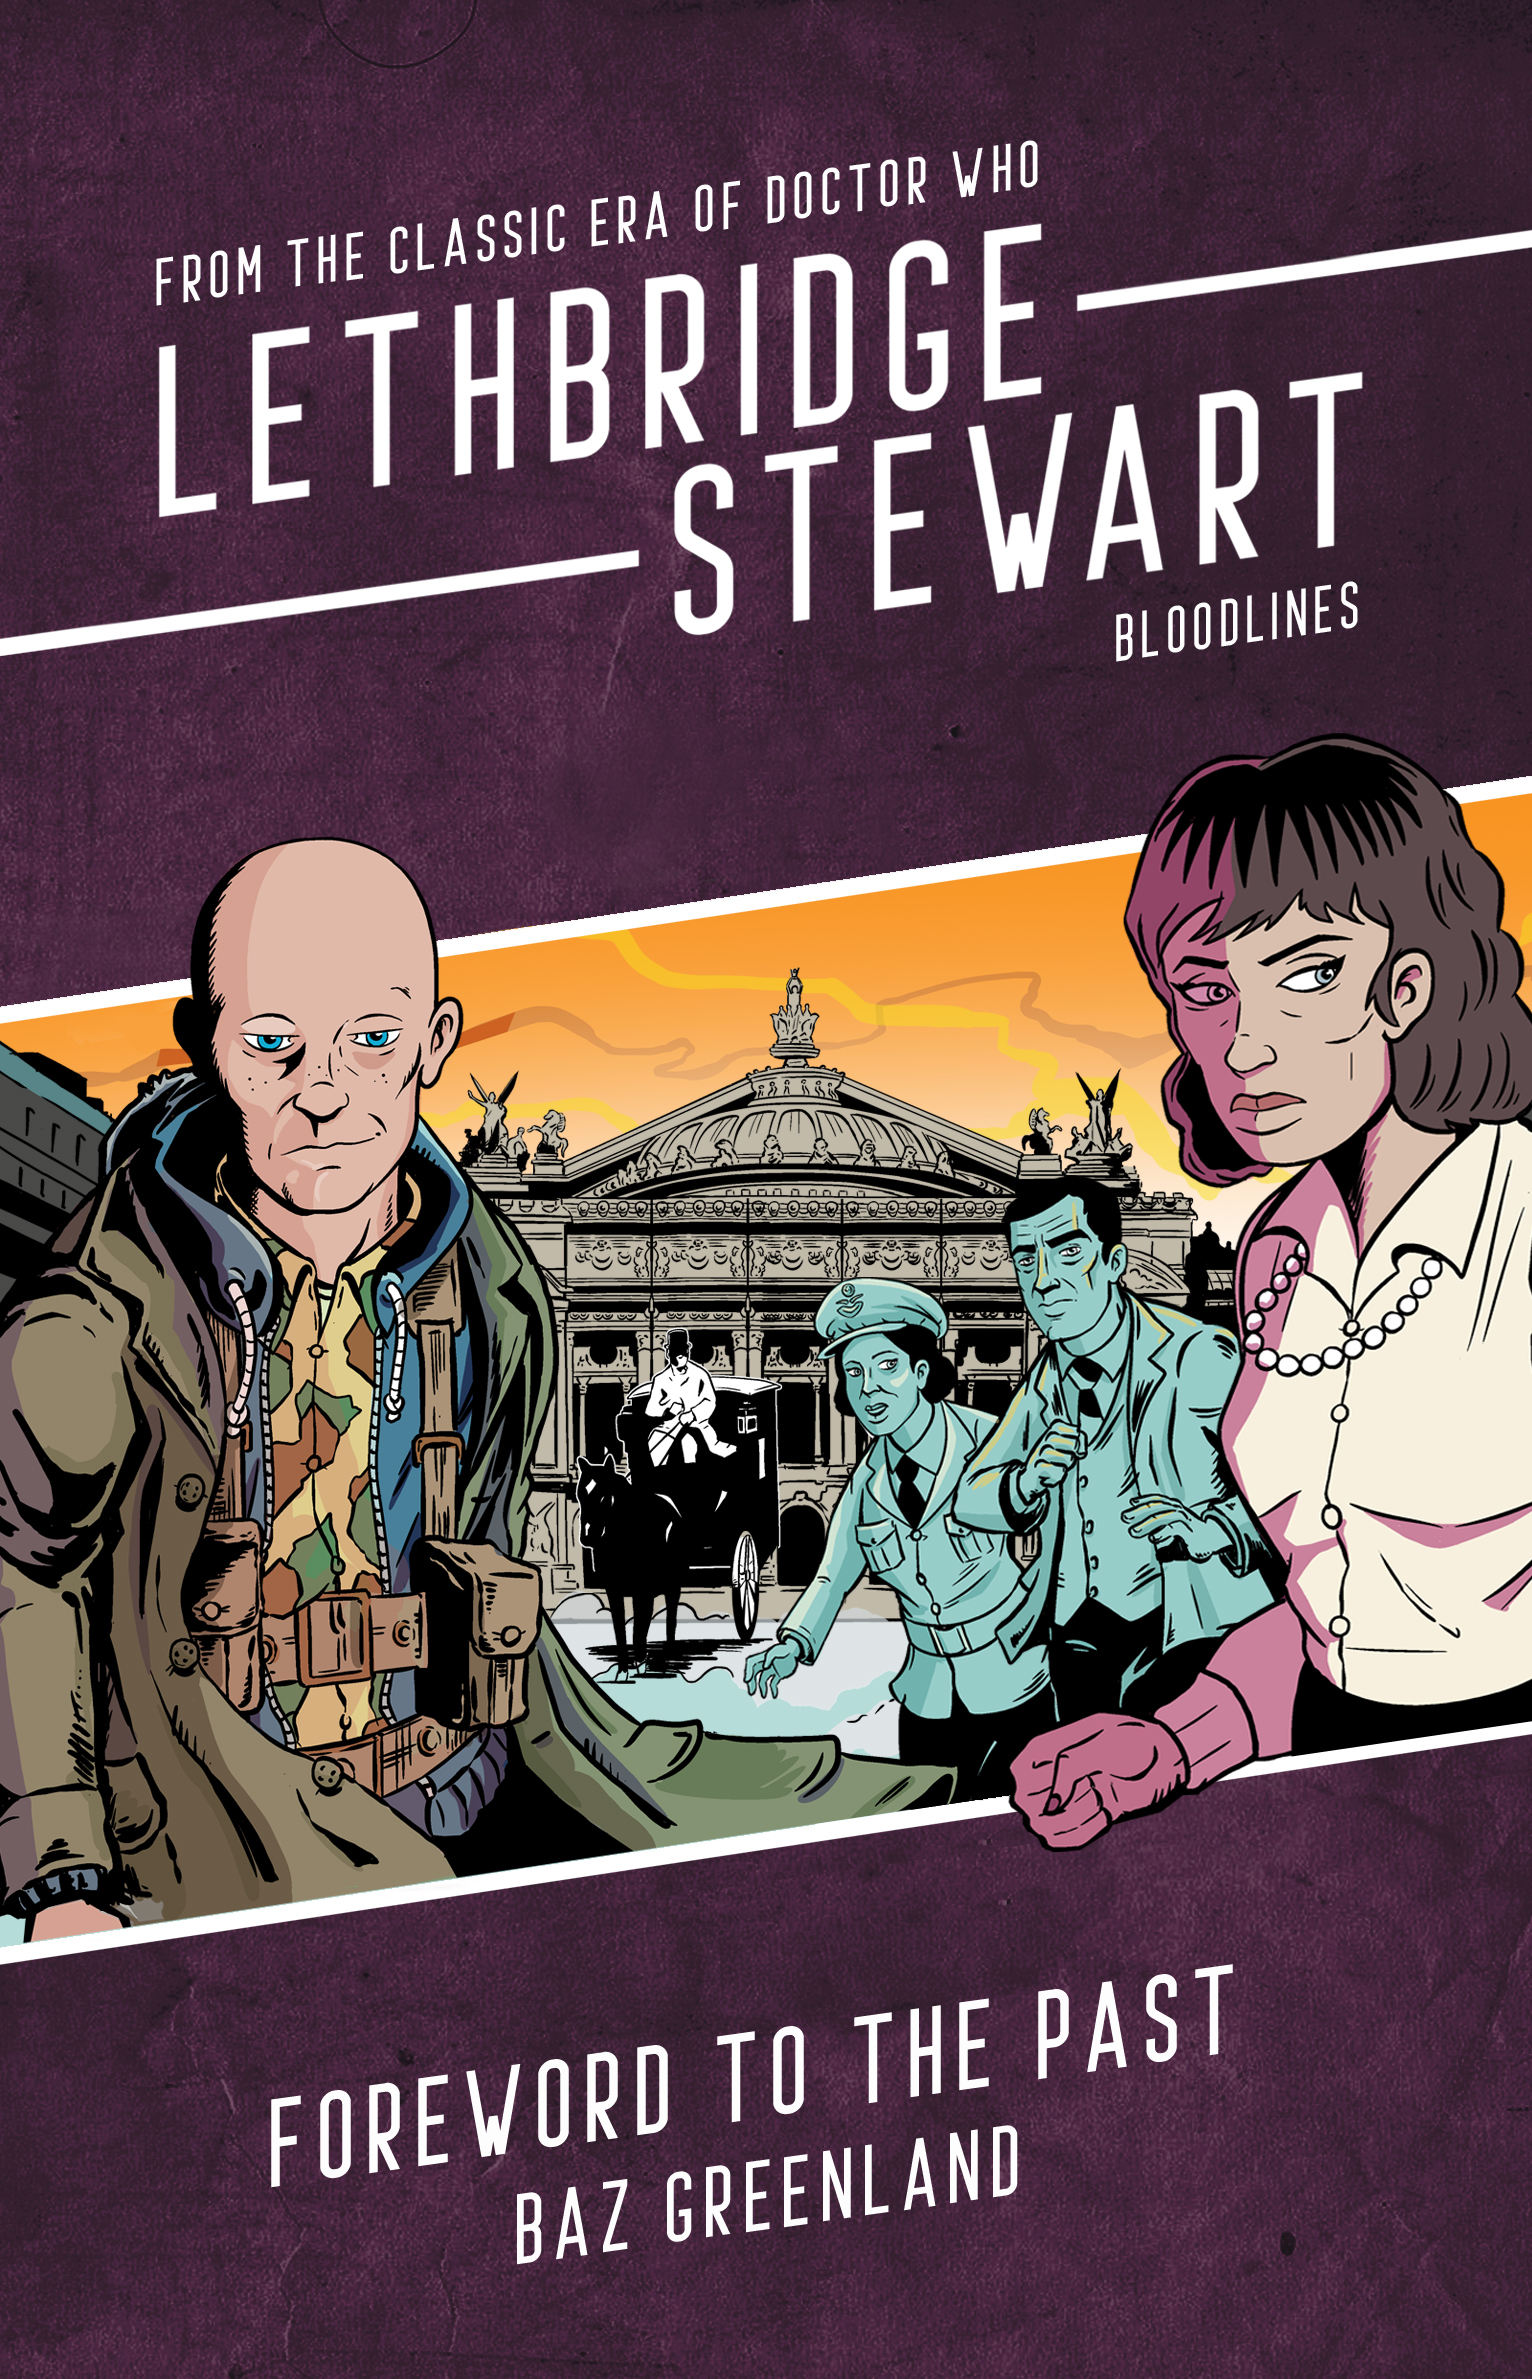 Pre-Order the Final Lethbridge-Stewart: Bloodlines Novel Now from Candy Jar